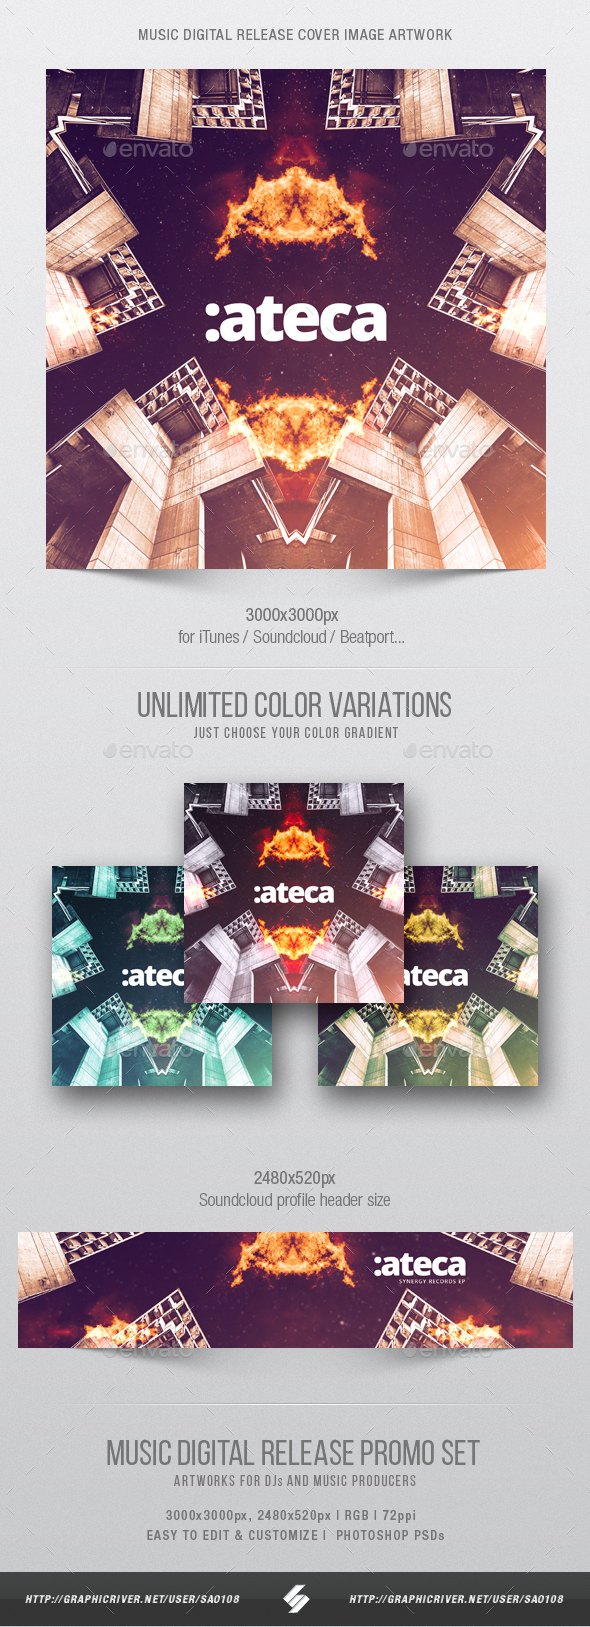 Ateca - Electronic Music Cover Image Artwork Template - Miscellaneous Social Media